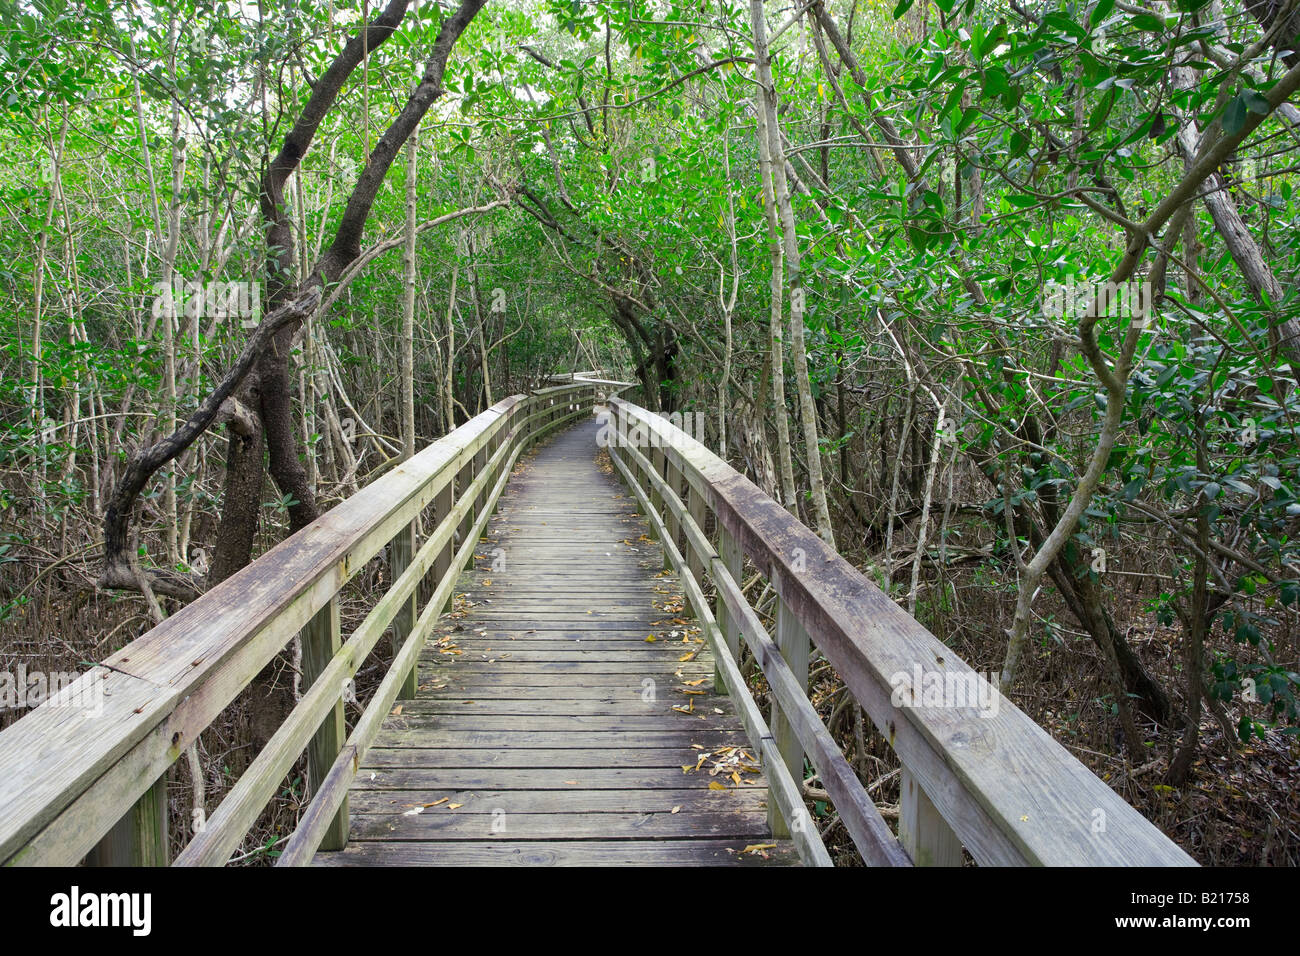 walkway through dense forest in Everglades National Park, Florida, USA - Stock Image